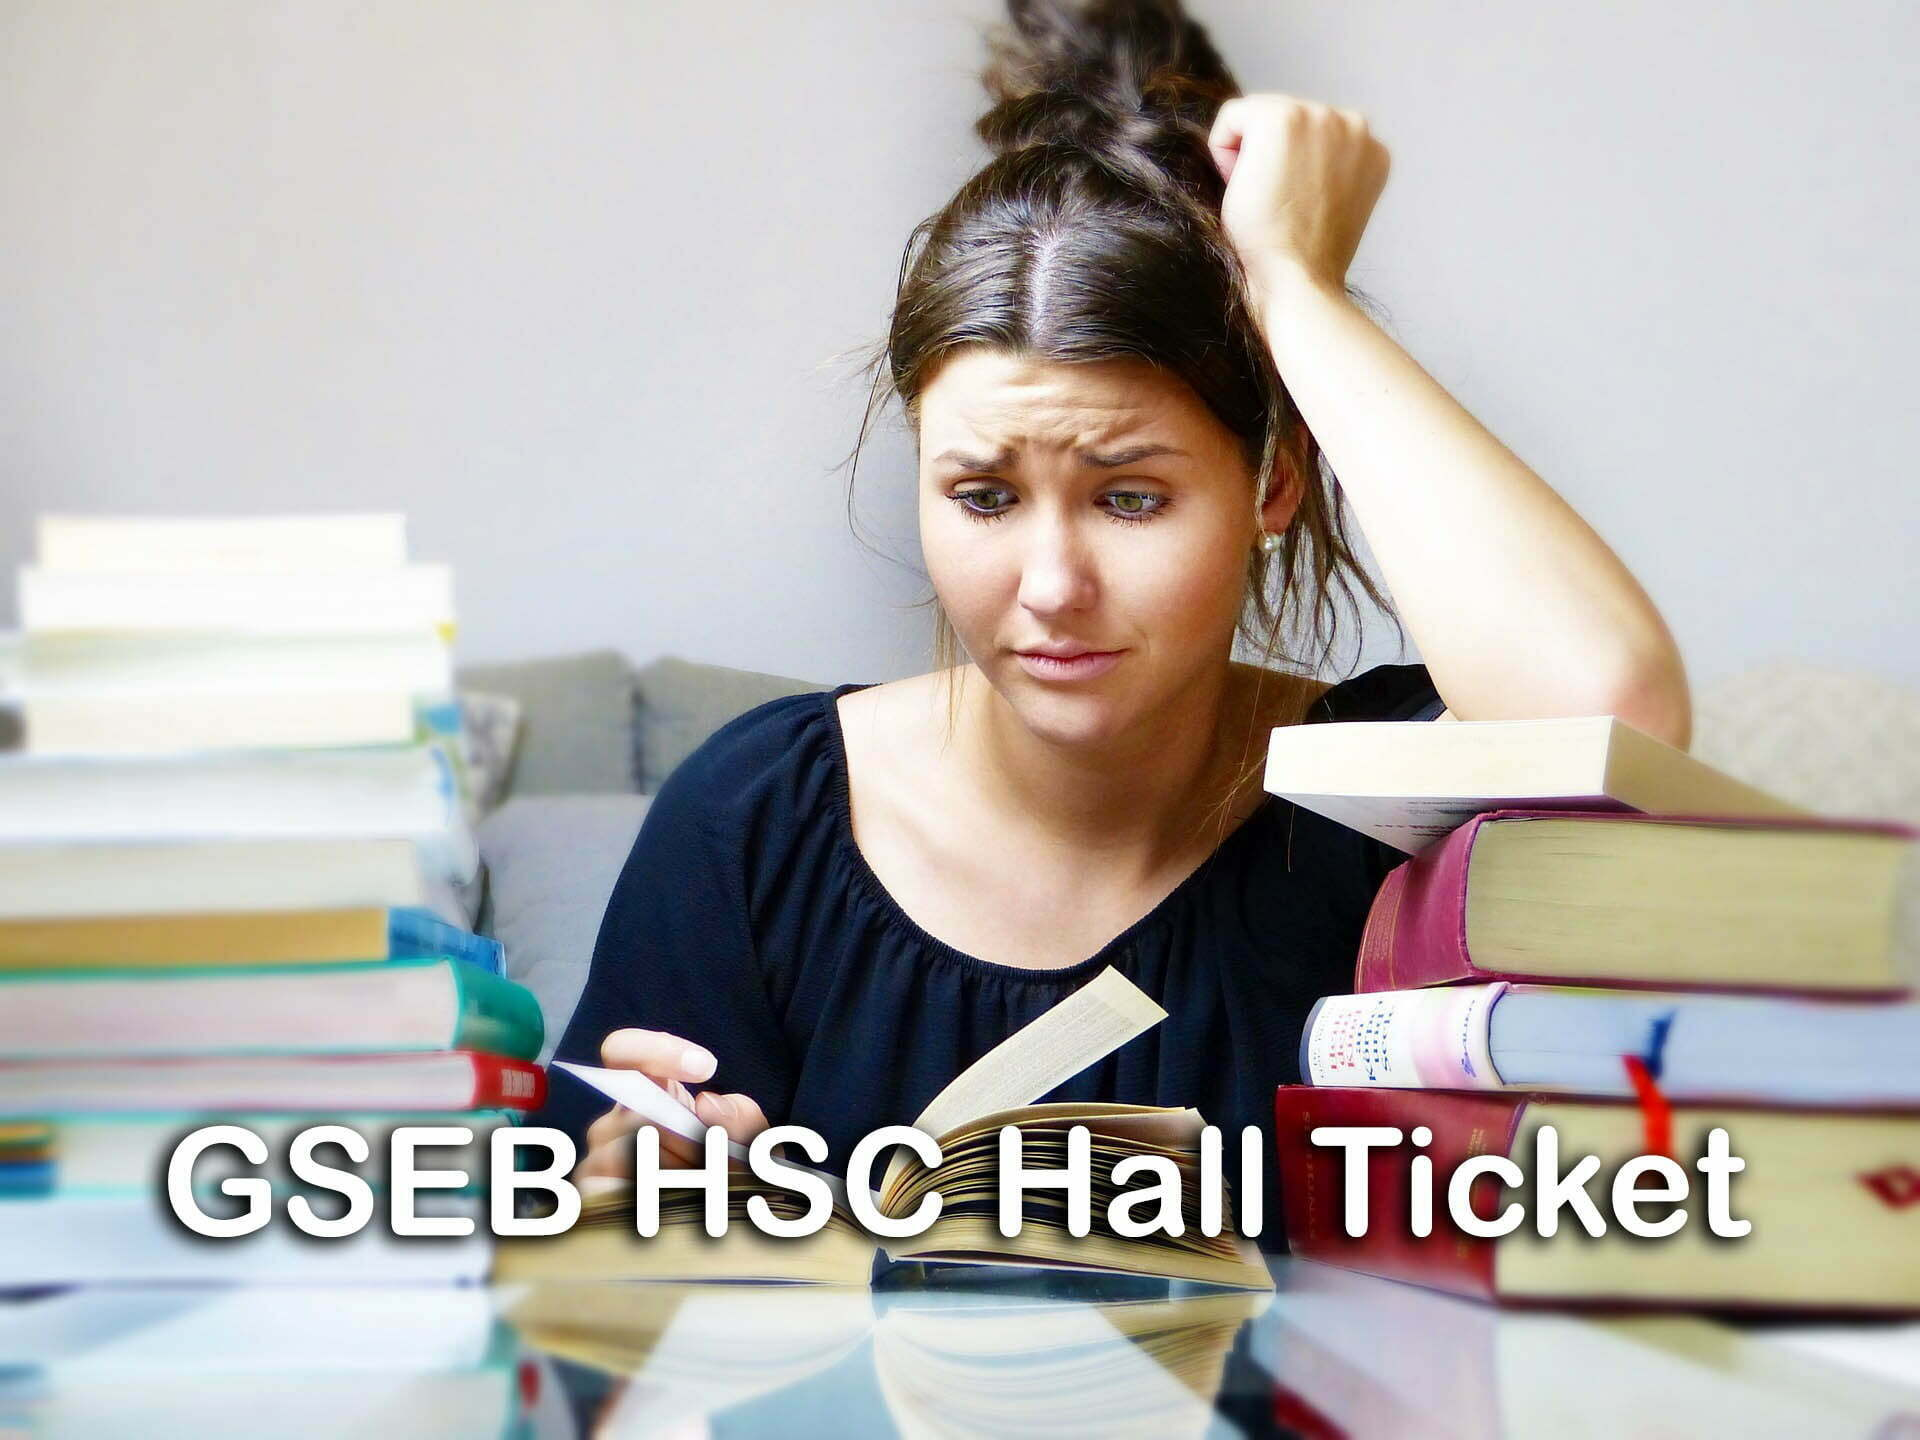 GSEB HSC Hall Ticket